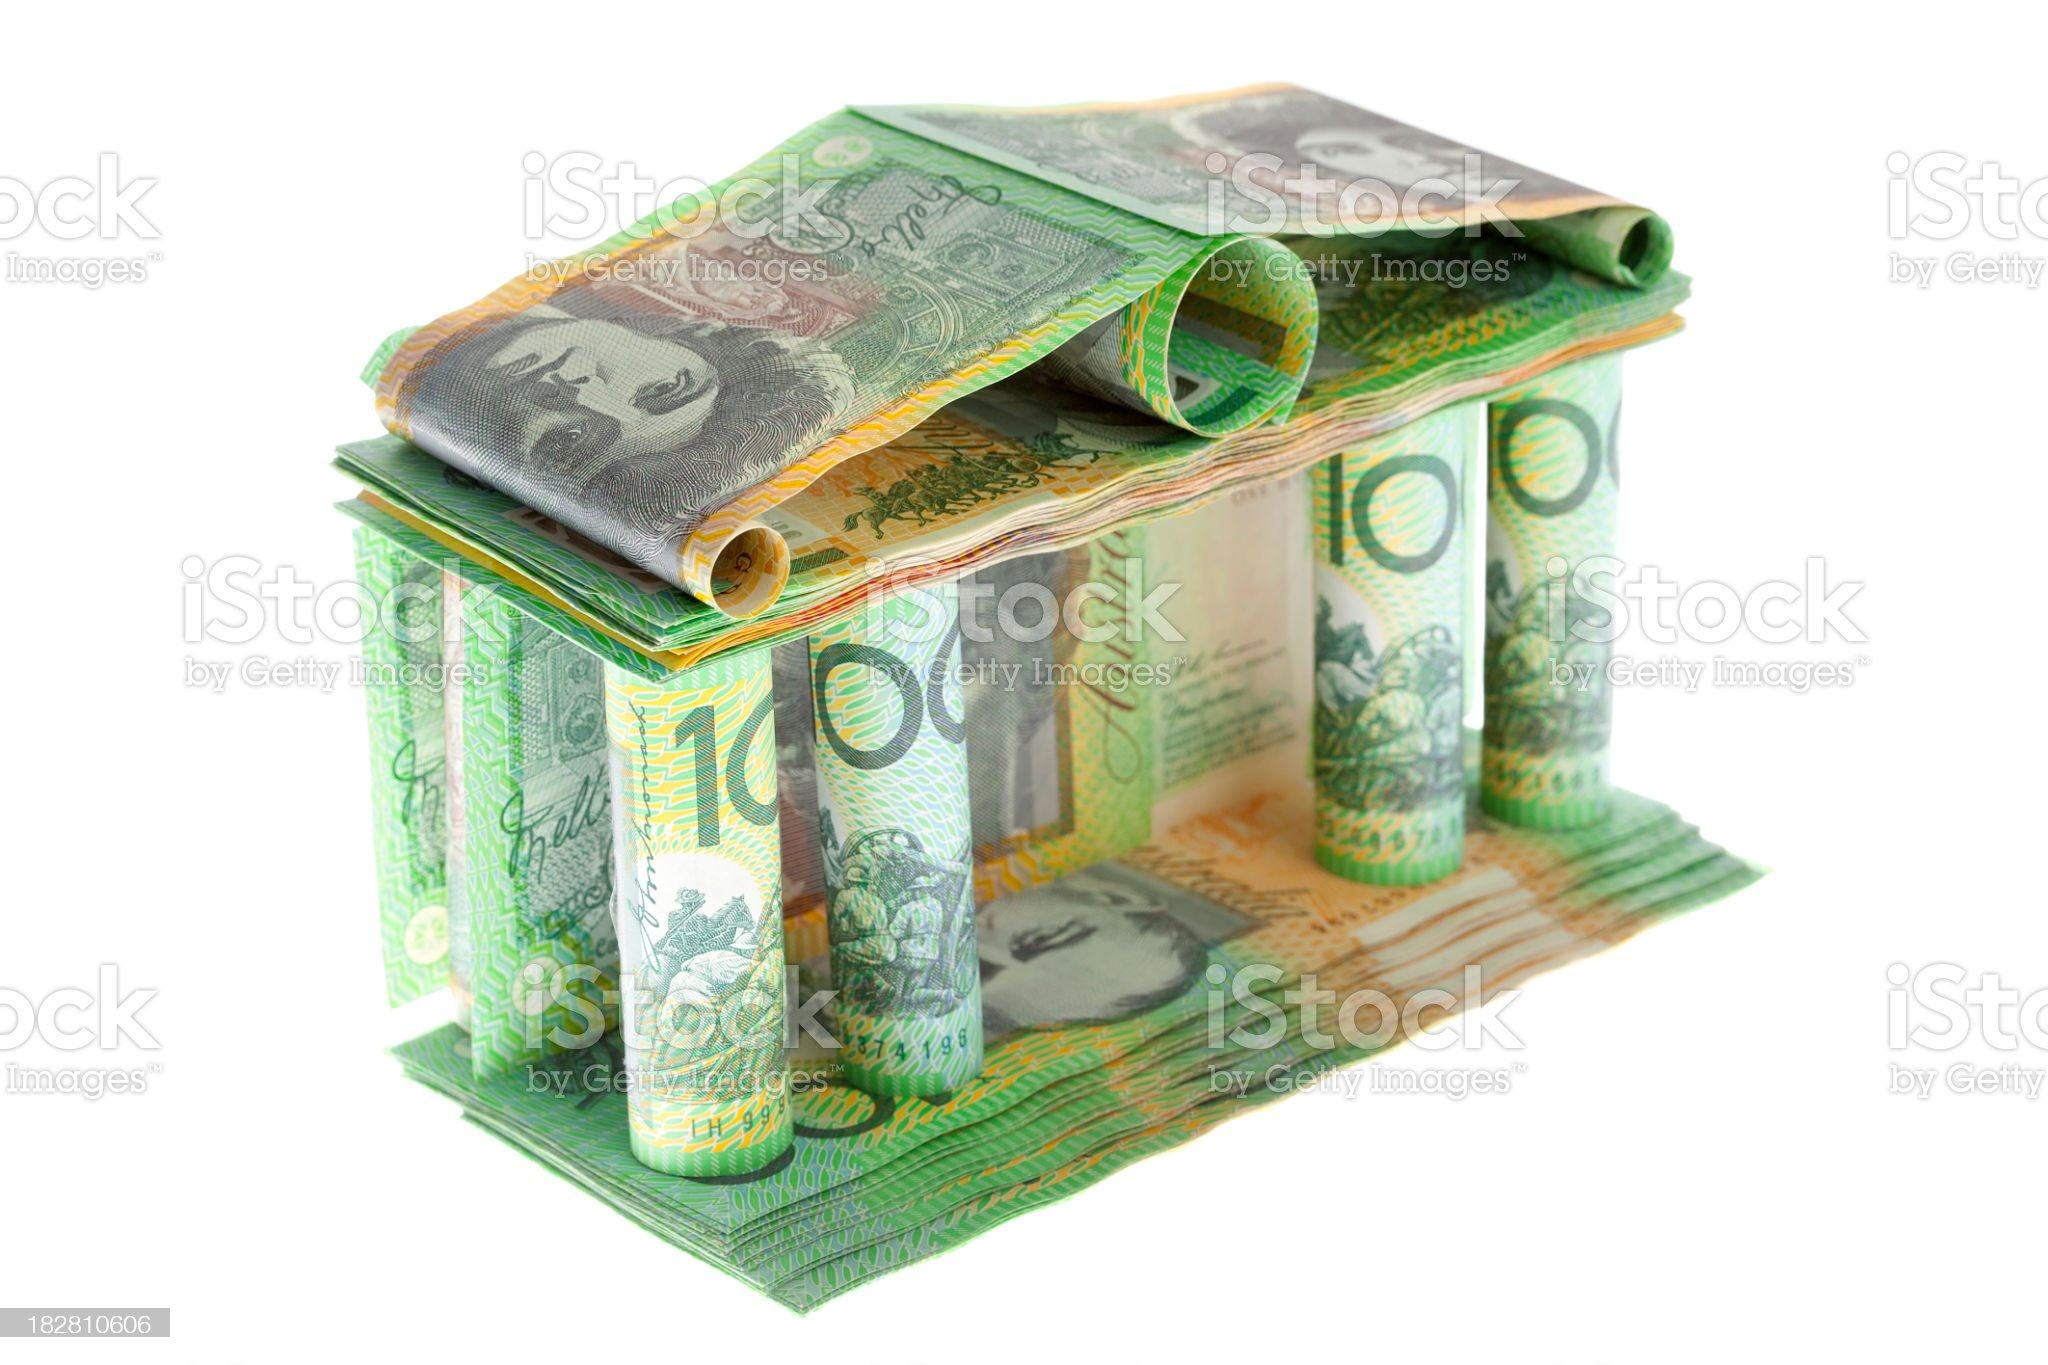 The bank. royalty-free stock photo